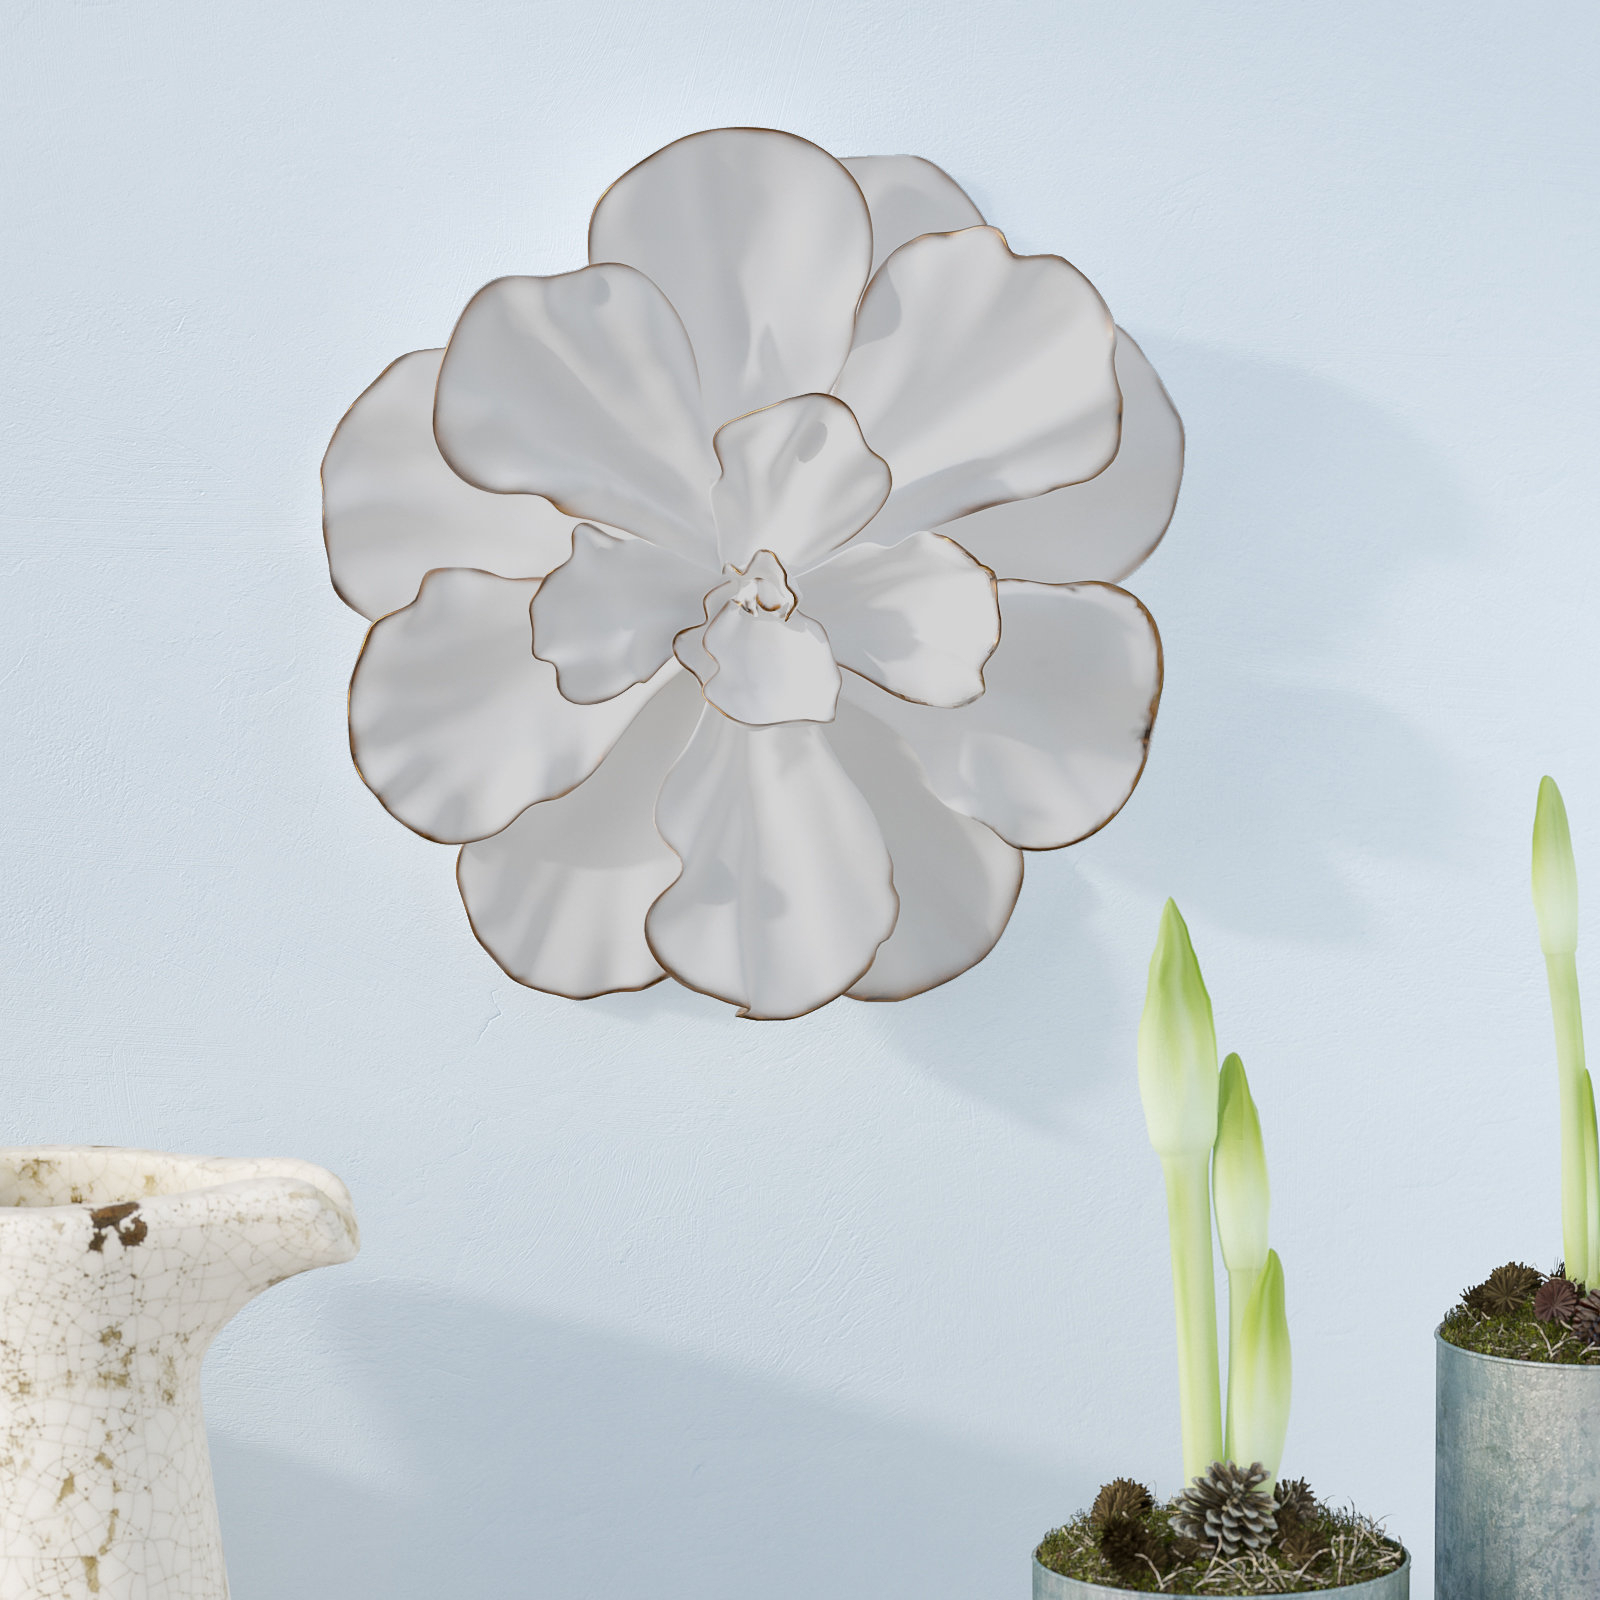 Latest Flower Wall Decor throughout Ophelia & Co. White/gold Flower Wall Décor & Reviews